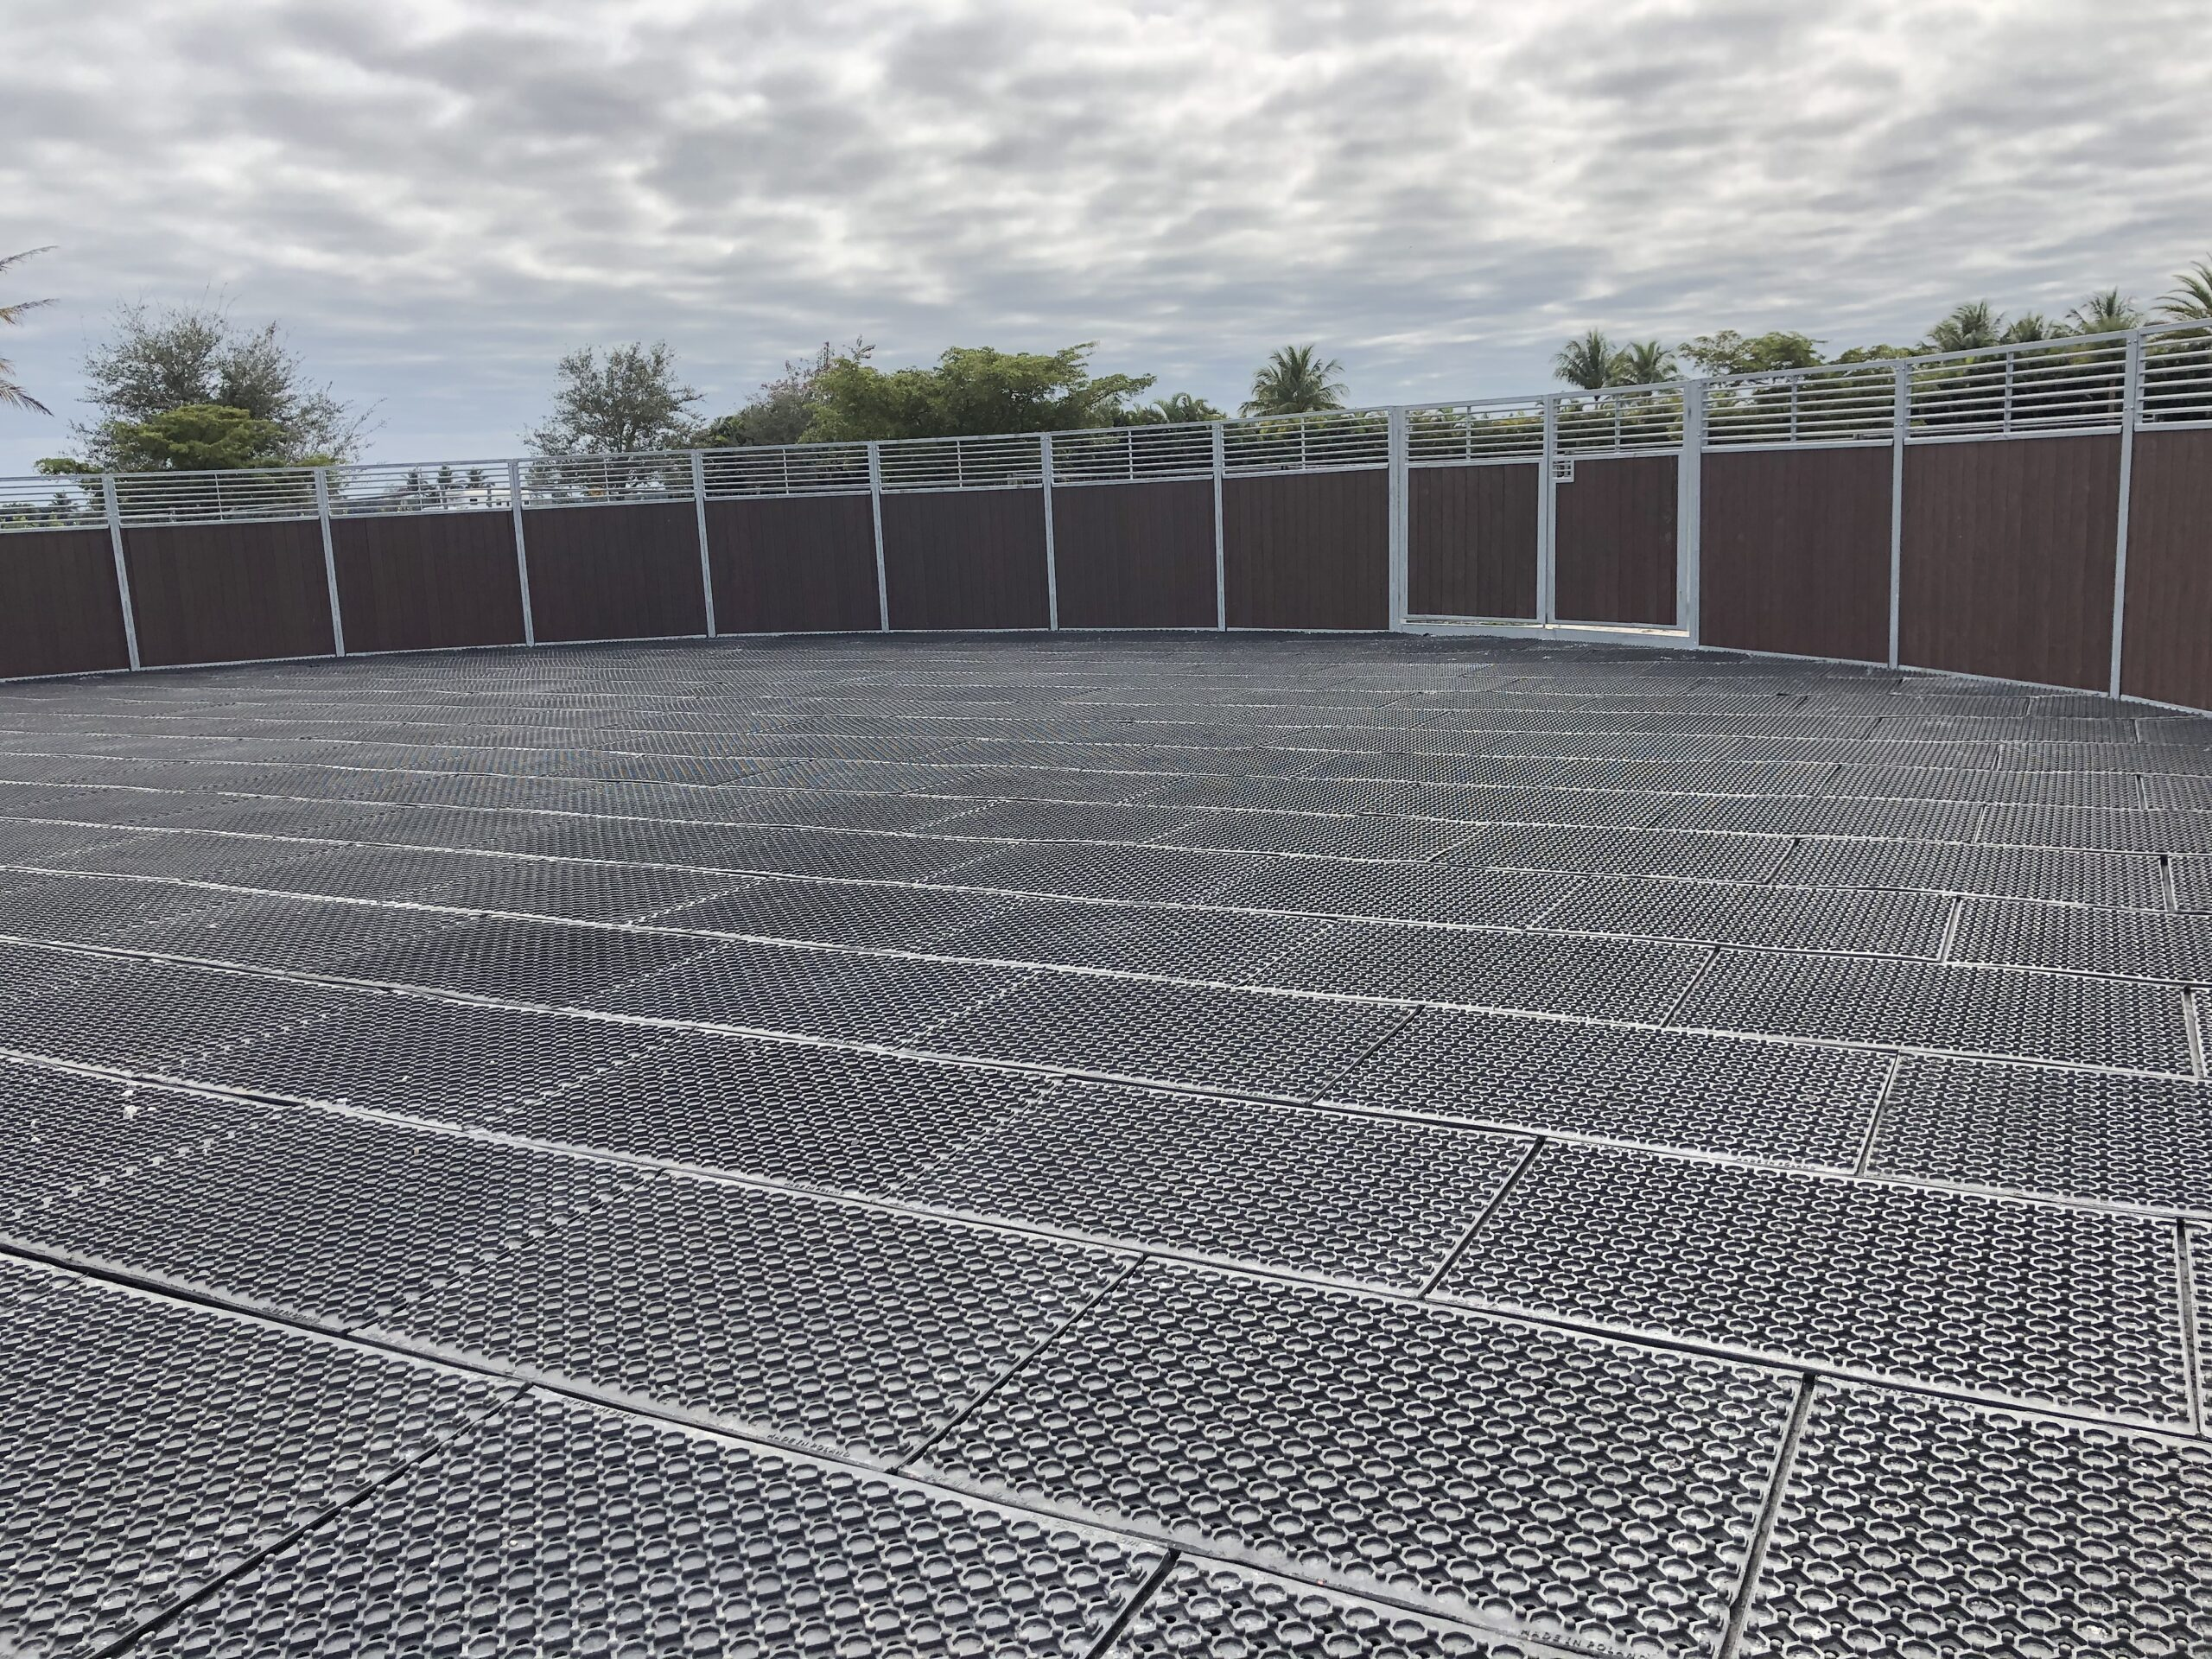 Arena base mats laid out in a round pen